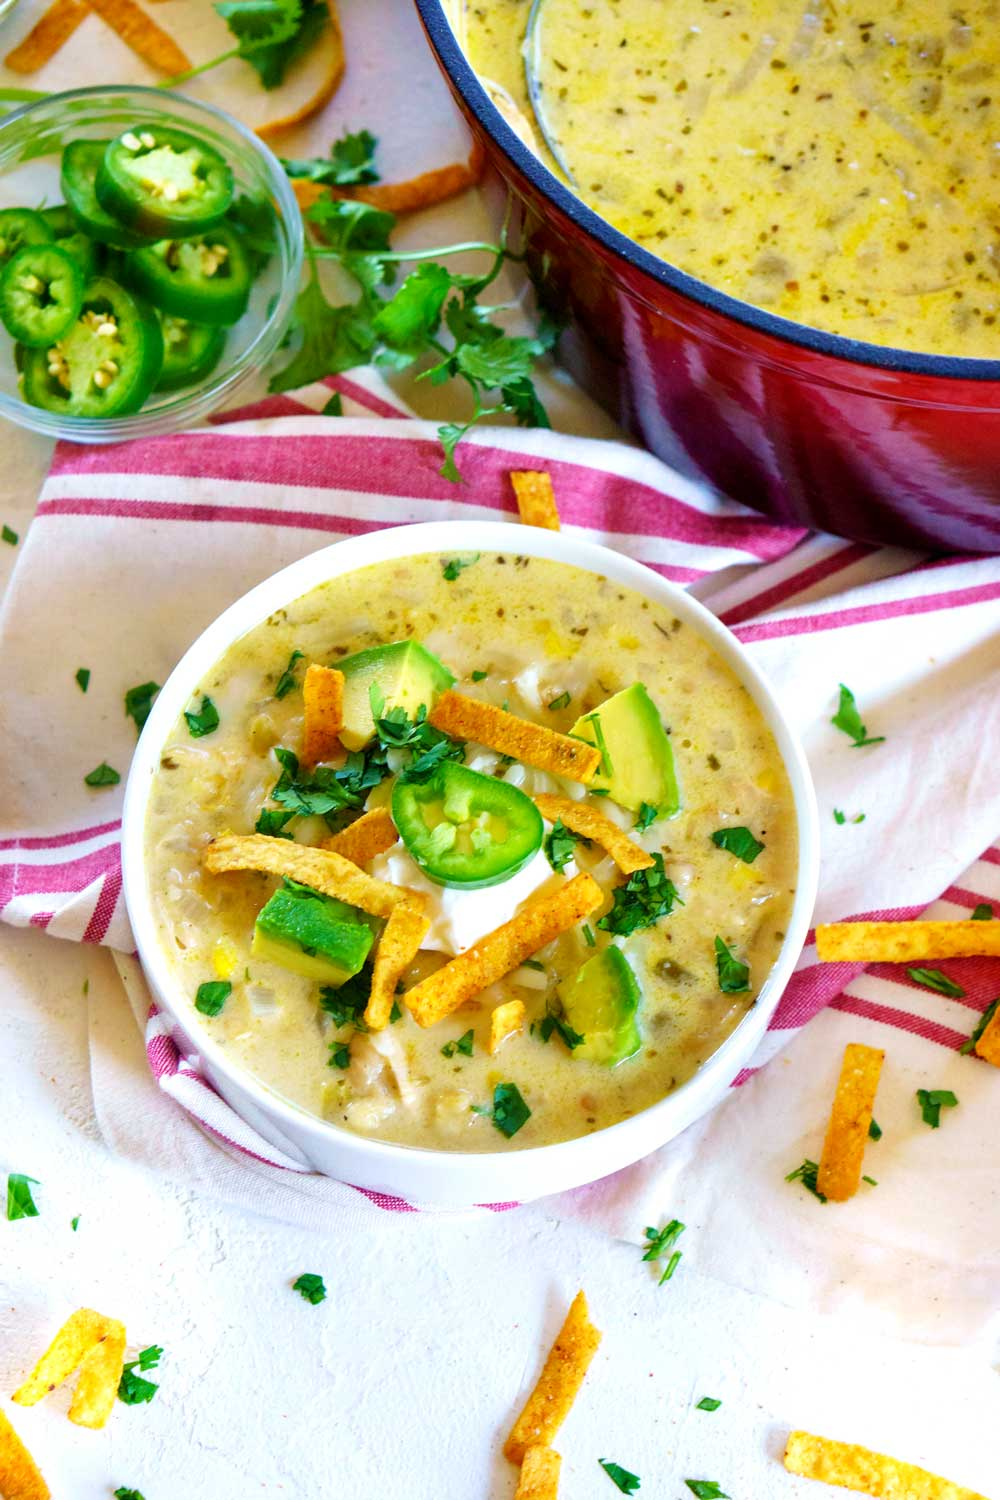 Are you ready for one of the easiest recipes for White Chicken Chili out there? First, in a large pot, sauté the onions and garlic in a little bit of butter. Next, add all of the other chili ingredients and bring the mixture up to a low boil. Then, reduce the heat to simmer the chicken chili for about 10 minutes. Finally, stir in the shredded cheese and sour cream until everything is good and melted, then serve!